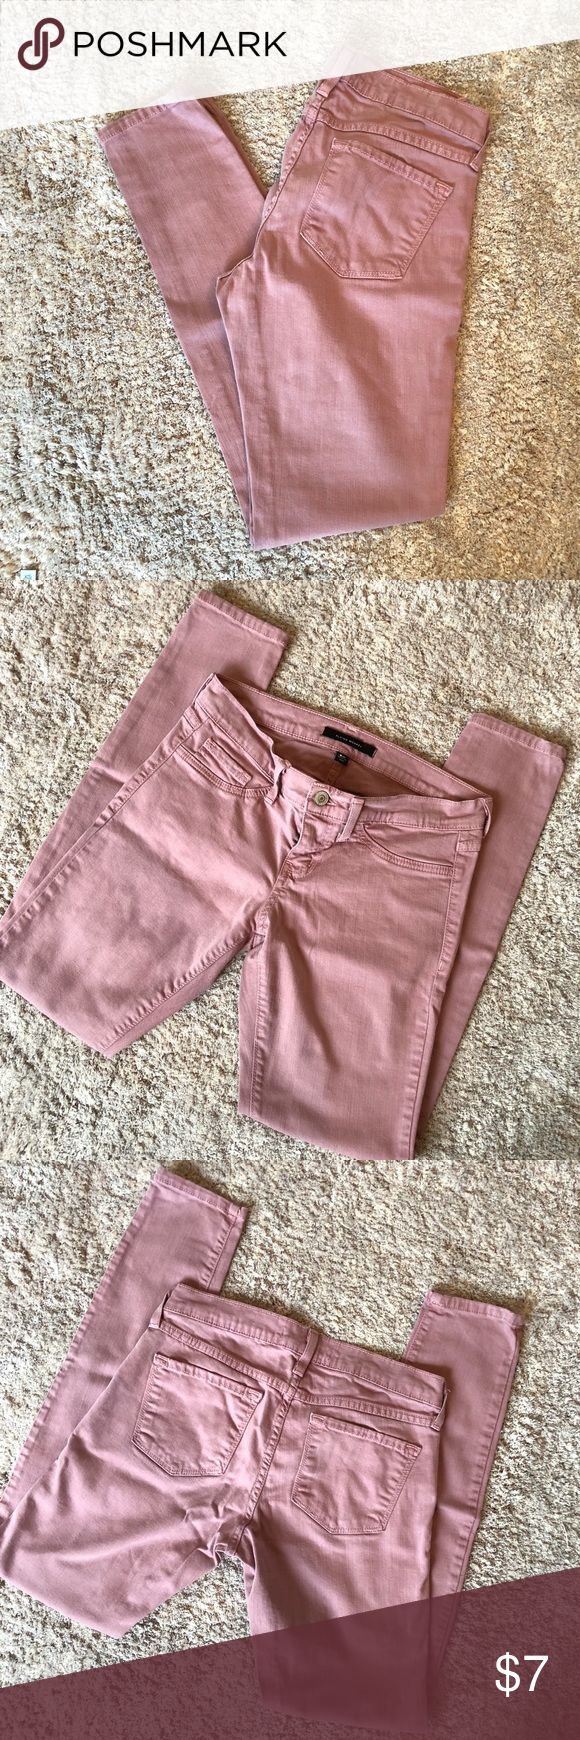 Pink Flying Monkey Jeans! Fantastic rose colored Flying Monkey skinny jeans! Only worn a few times and in great condition! 27 inch waist, 30.5 inch inseam, and 7.5 inch rise. NO trades NO PayPal. Bundle for additional discounts! Flying Monkey Jeans Skinny